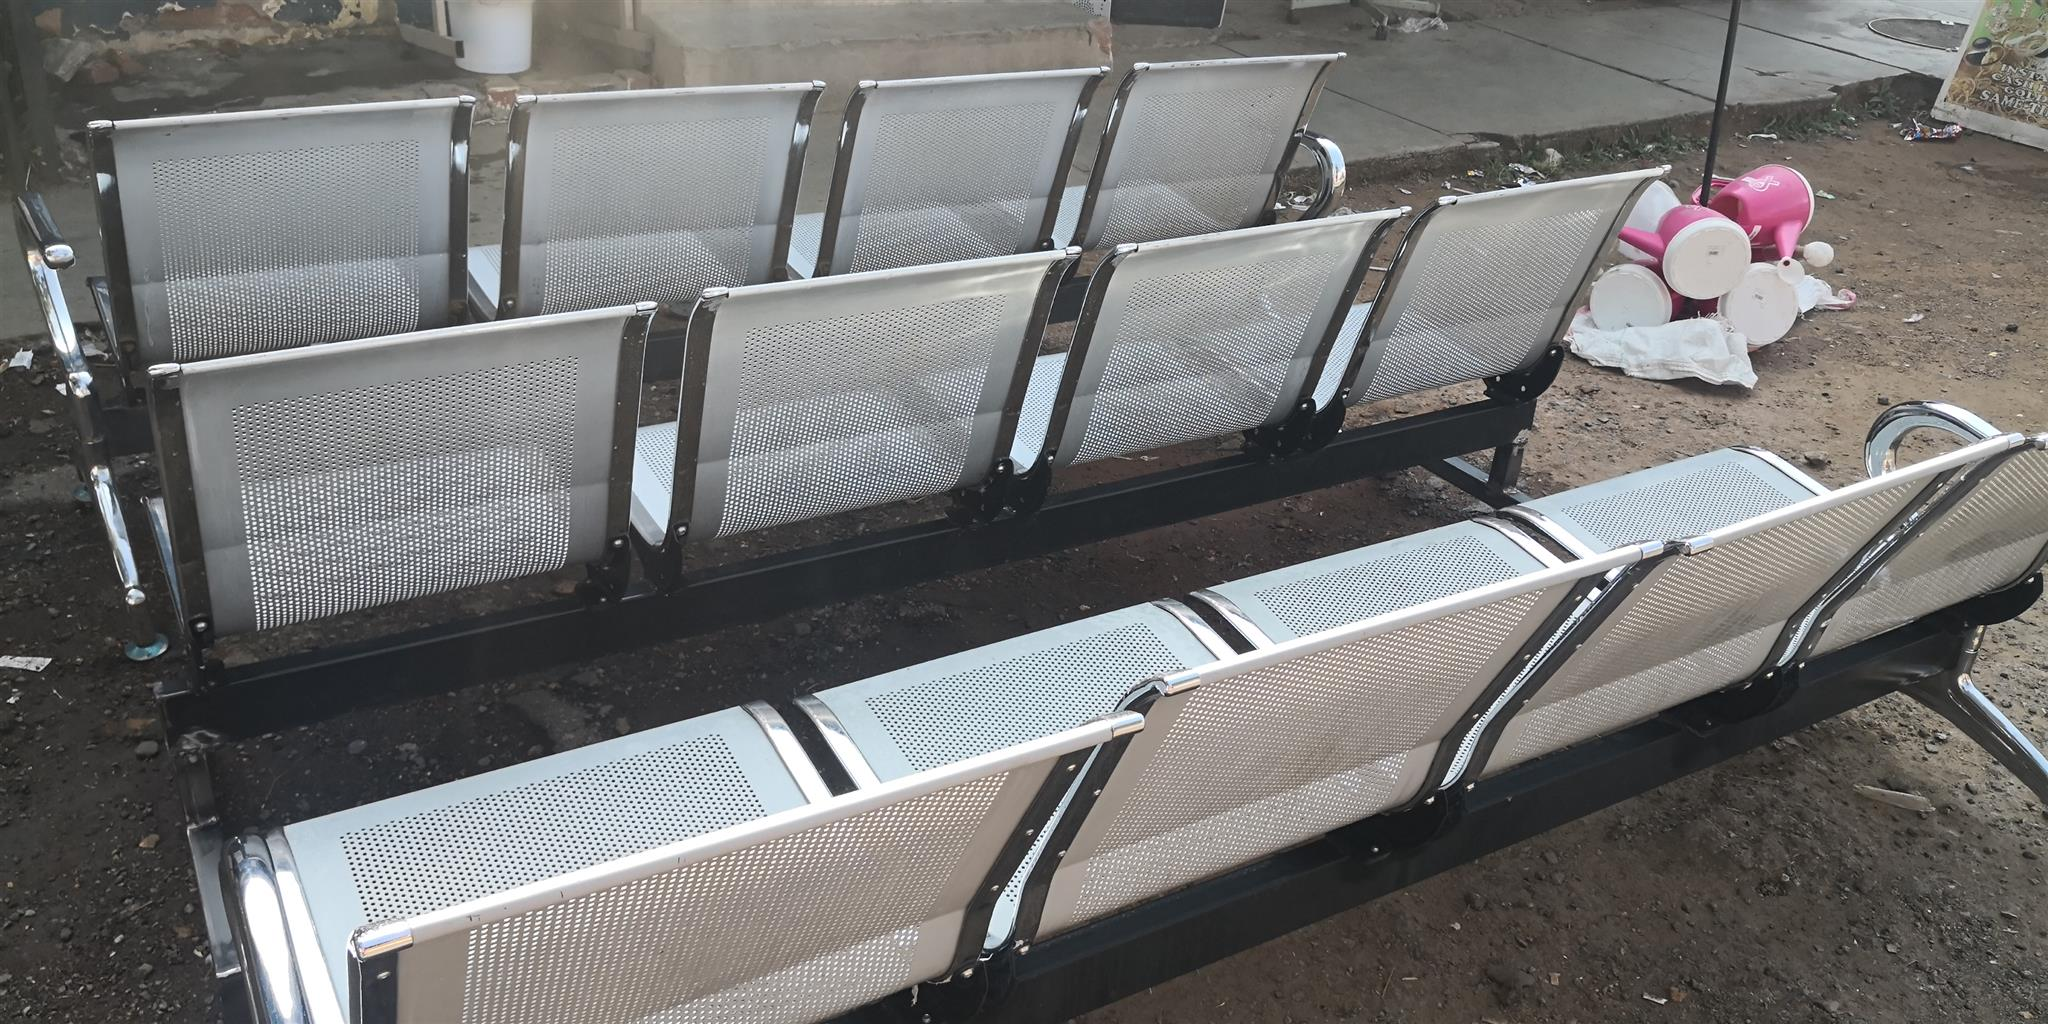 Airport bench or waiting bench